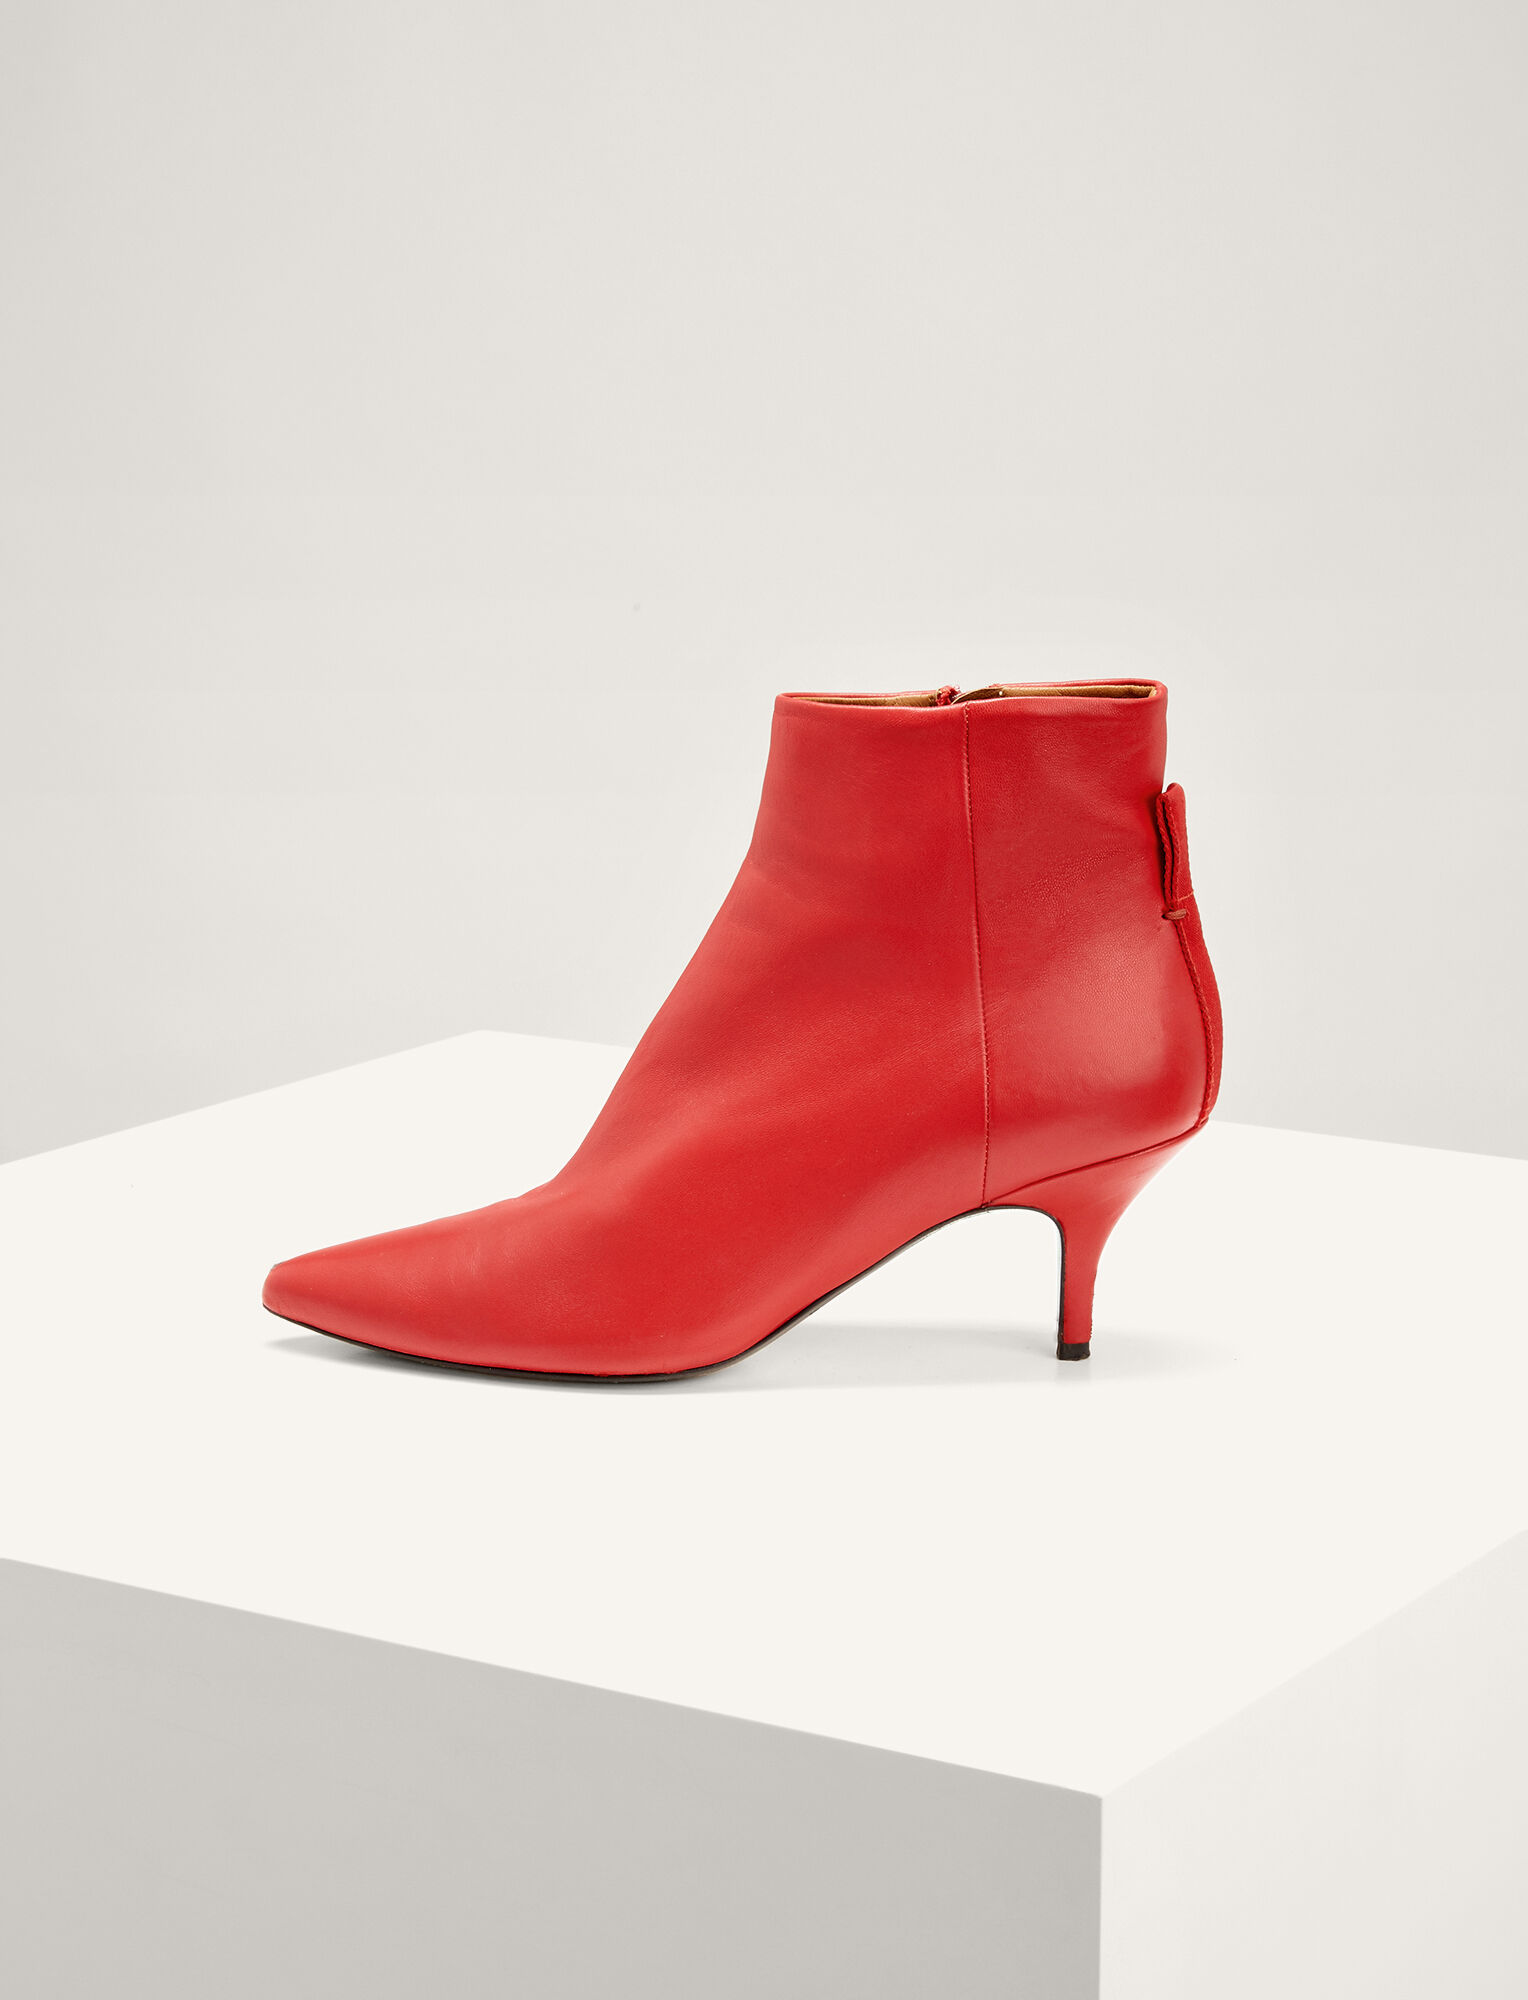 Joseph, Bottines Sioux Pointed, in RED